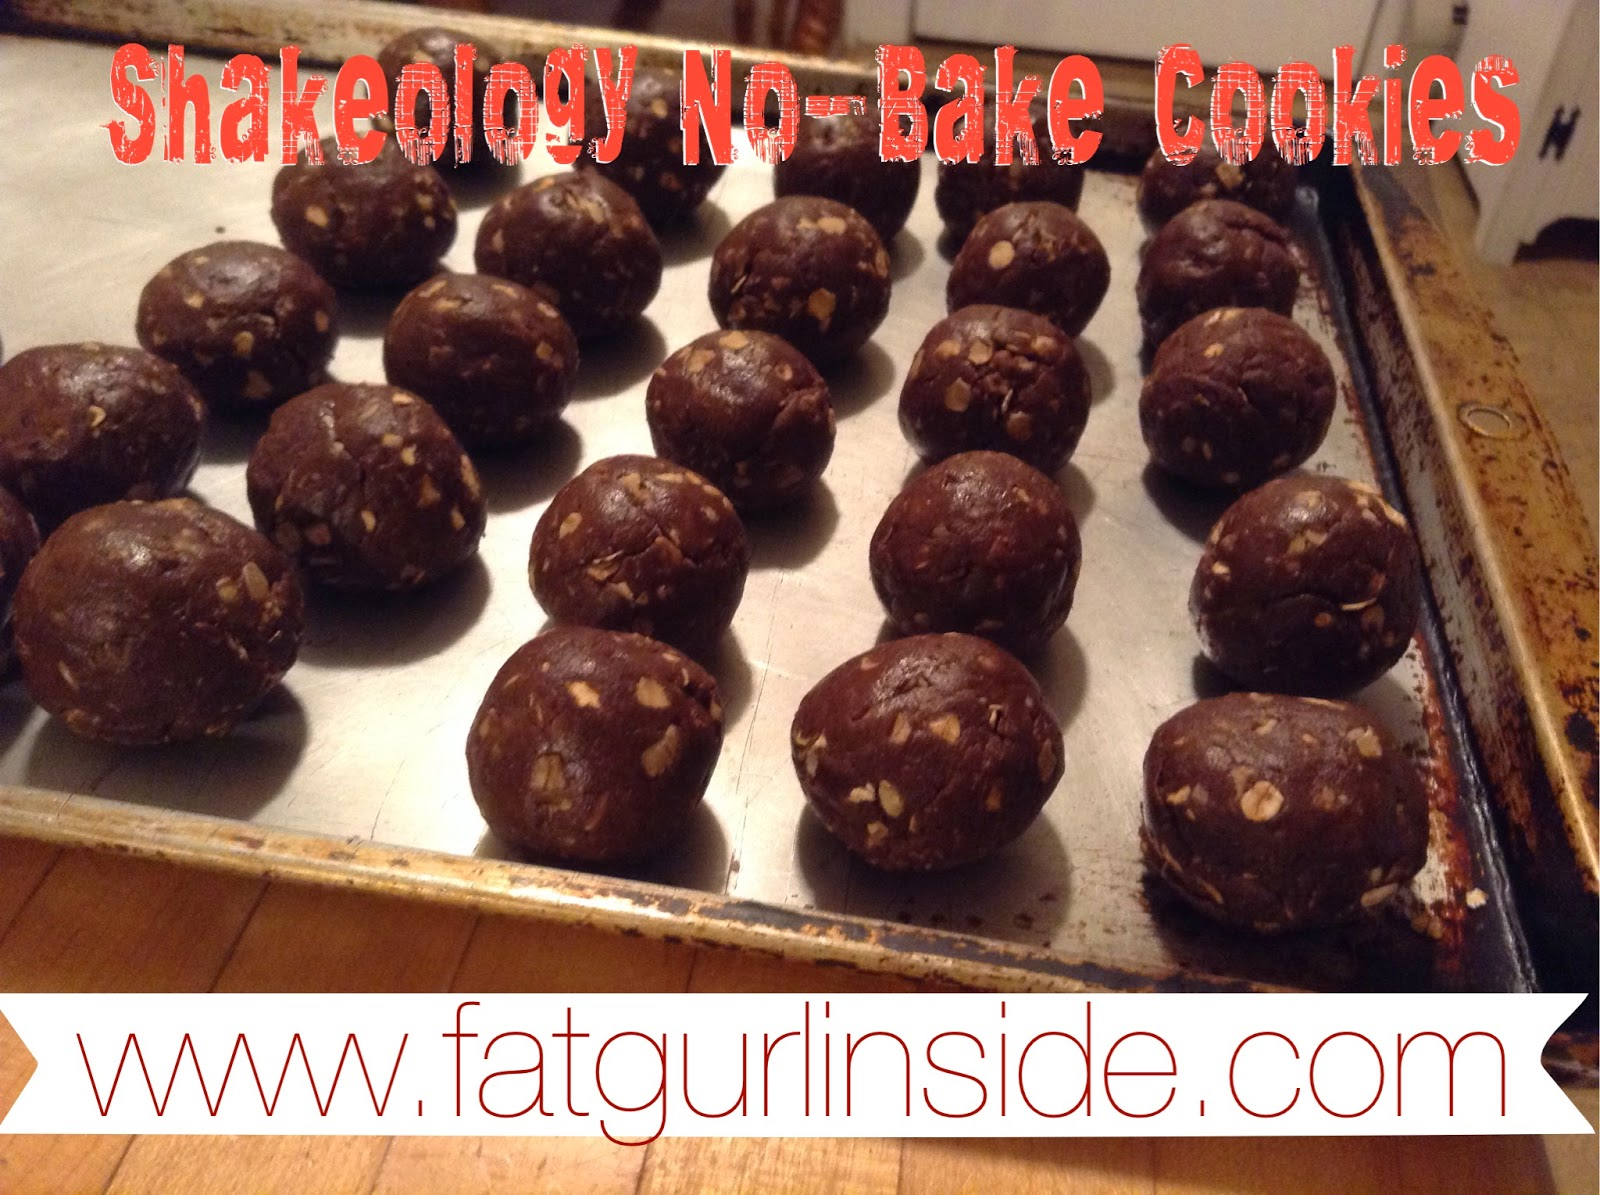 Shakeology No-Bake Cookie Recipe www.fatugurlinside.com